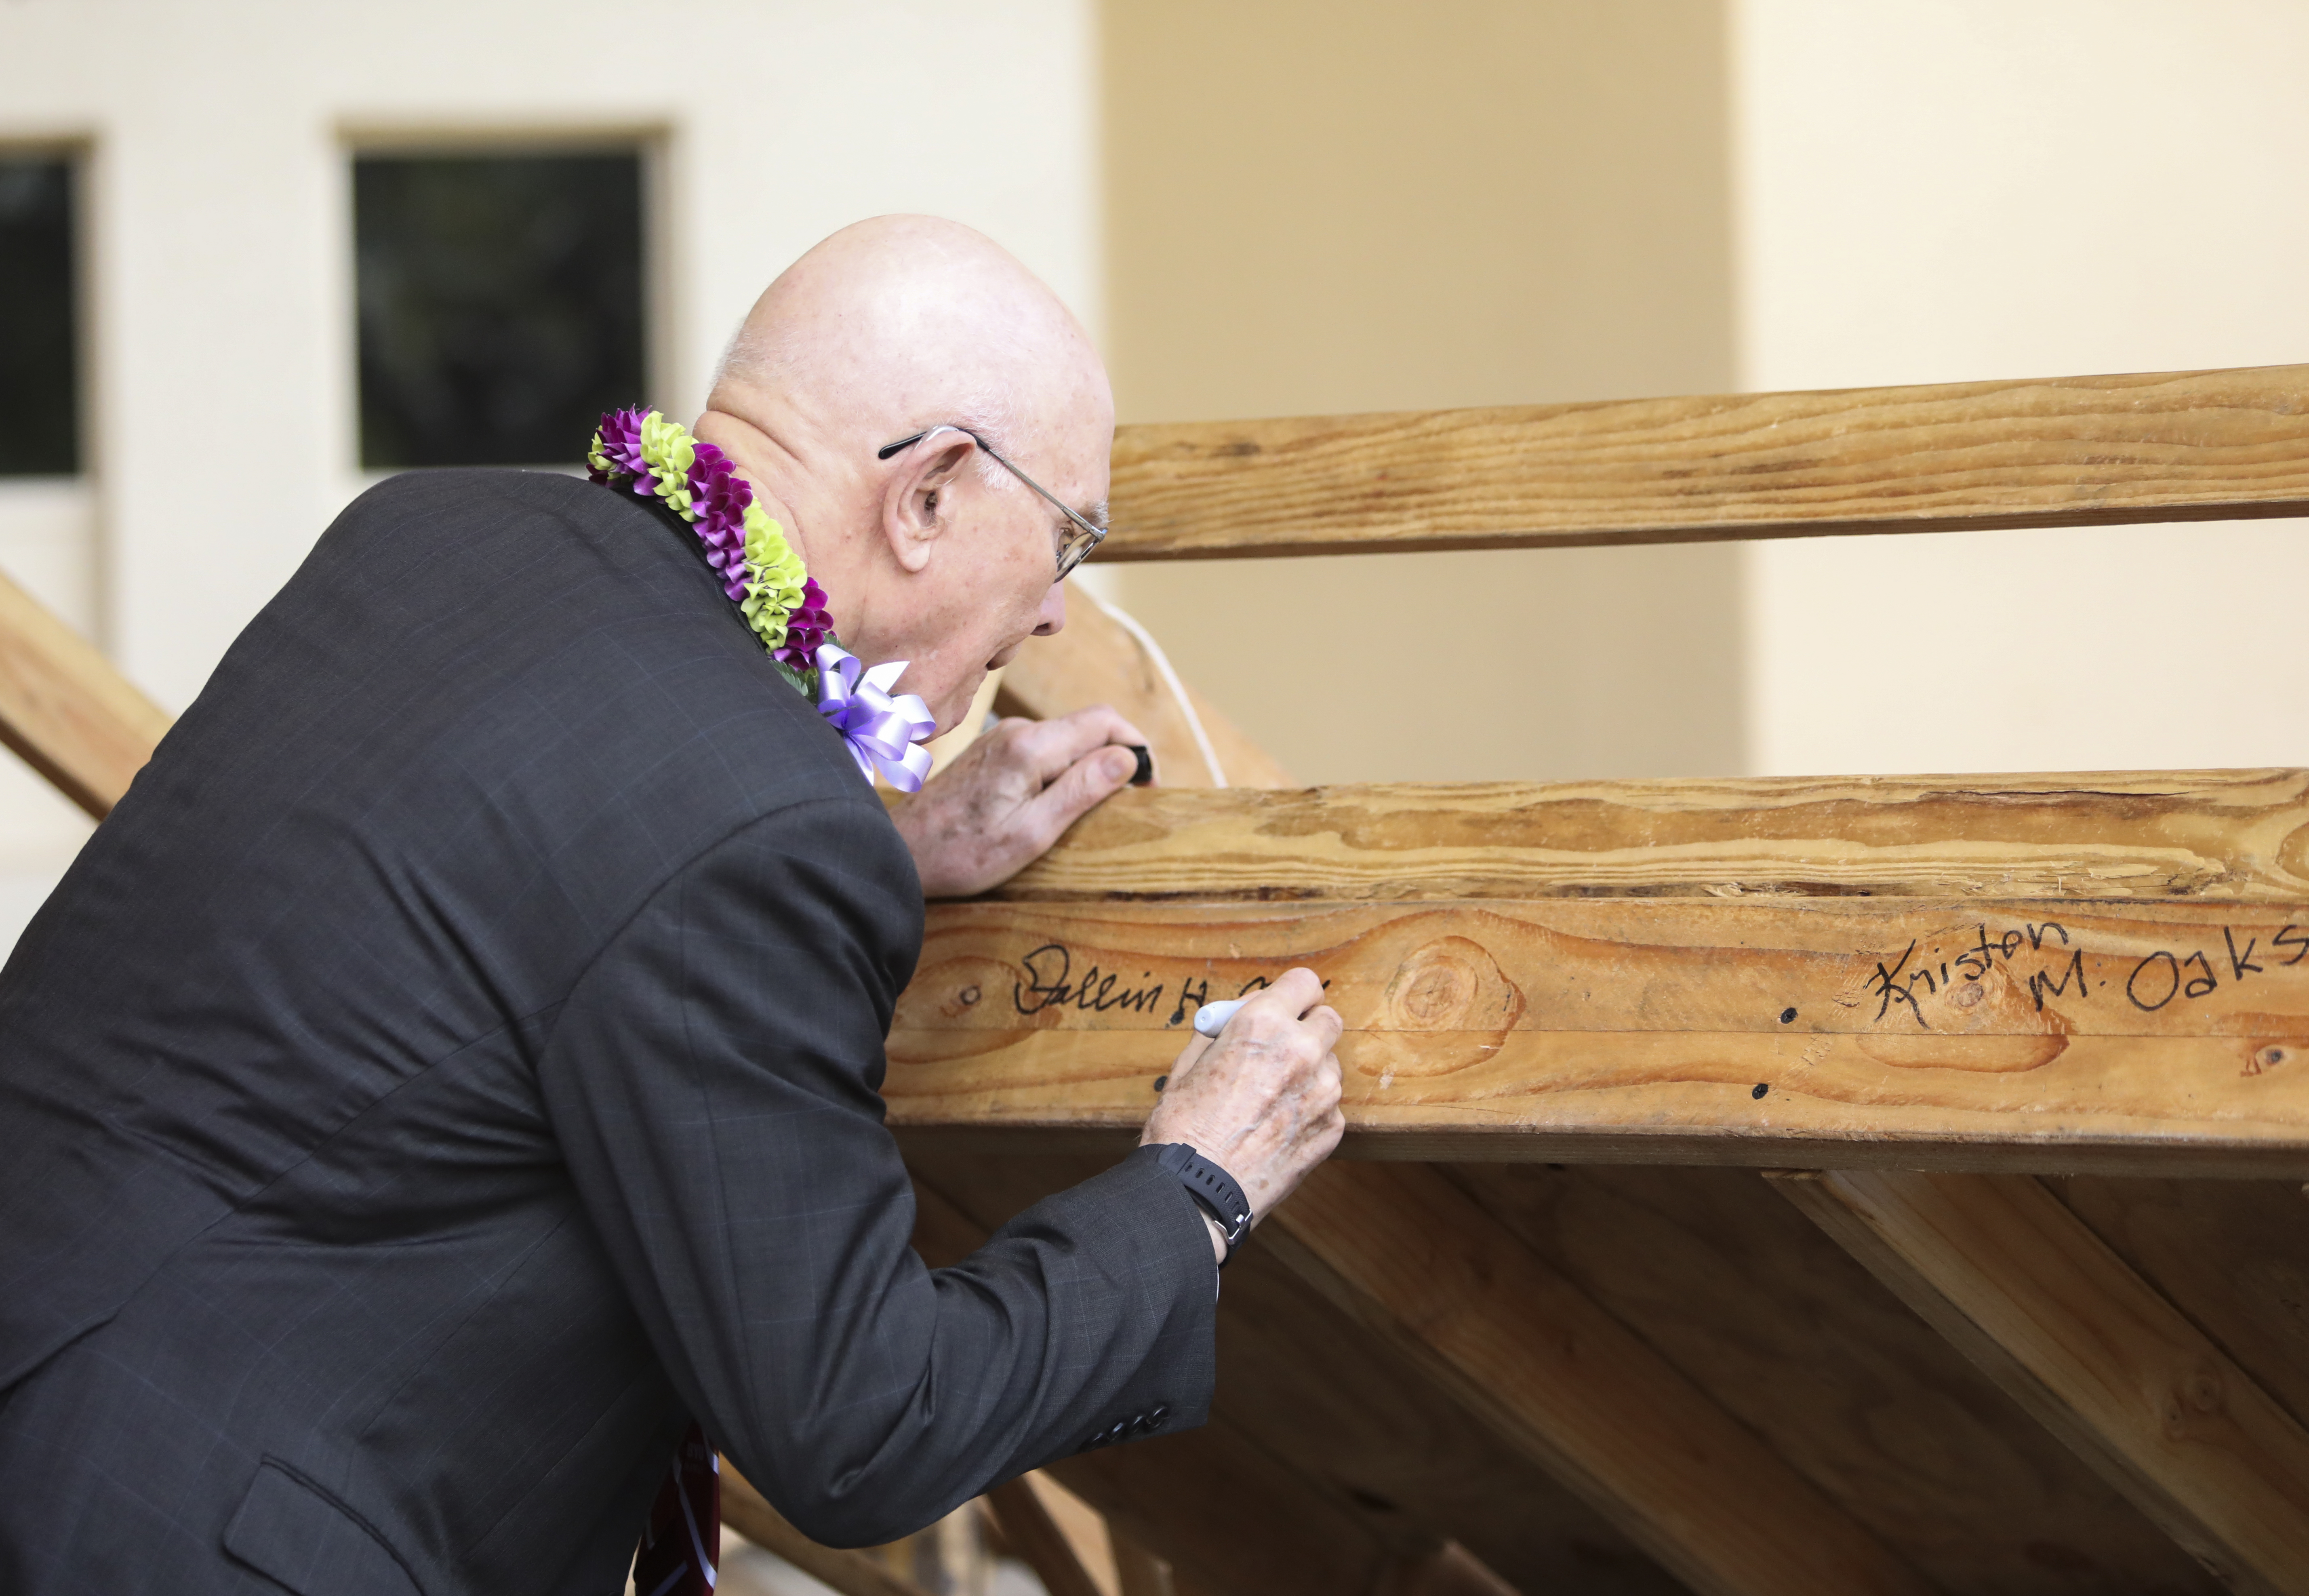 President Dallin H. Oaks, first counselor in the First Presidency, signs a handcart before a BYU-Hawaii devotional on June 11, 2019.